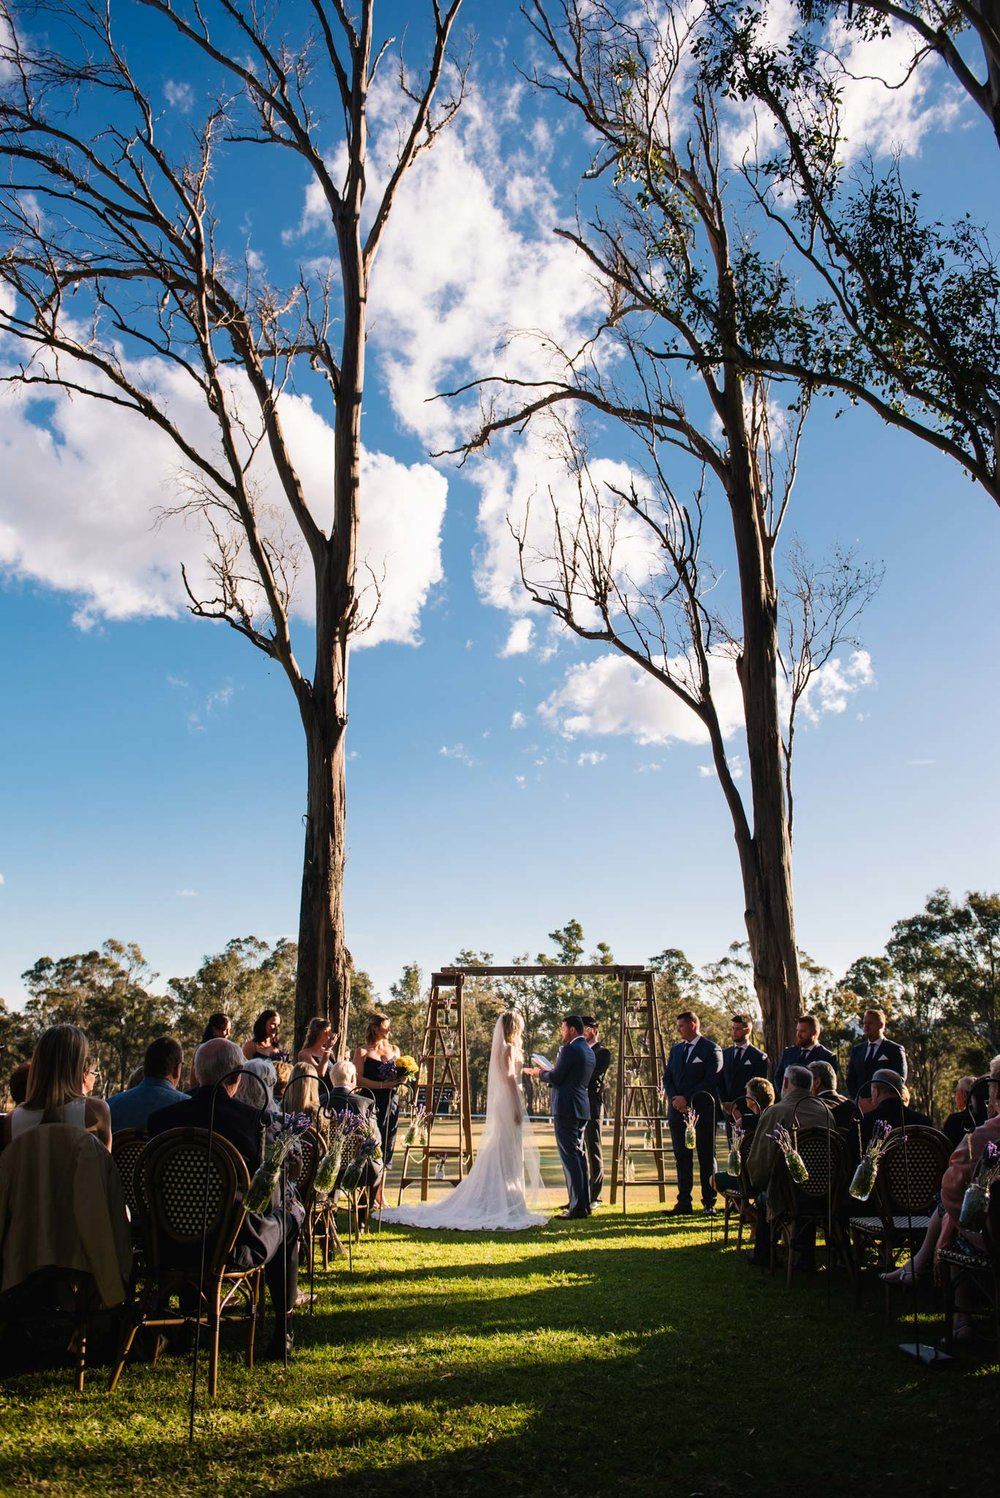 View of wedding ceremony at Wandin Valley Estate